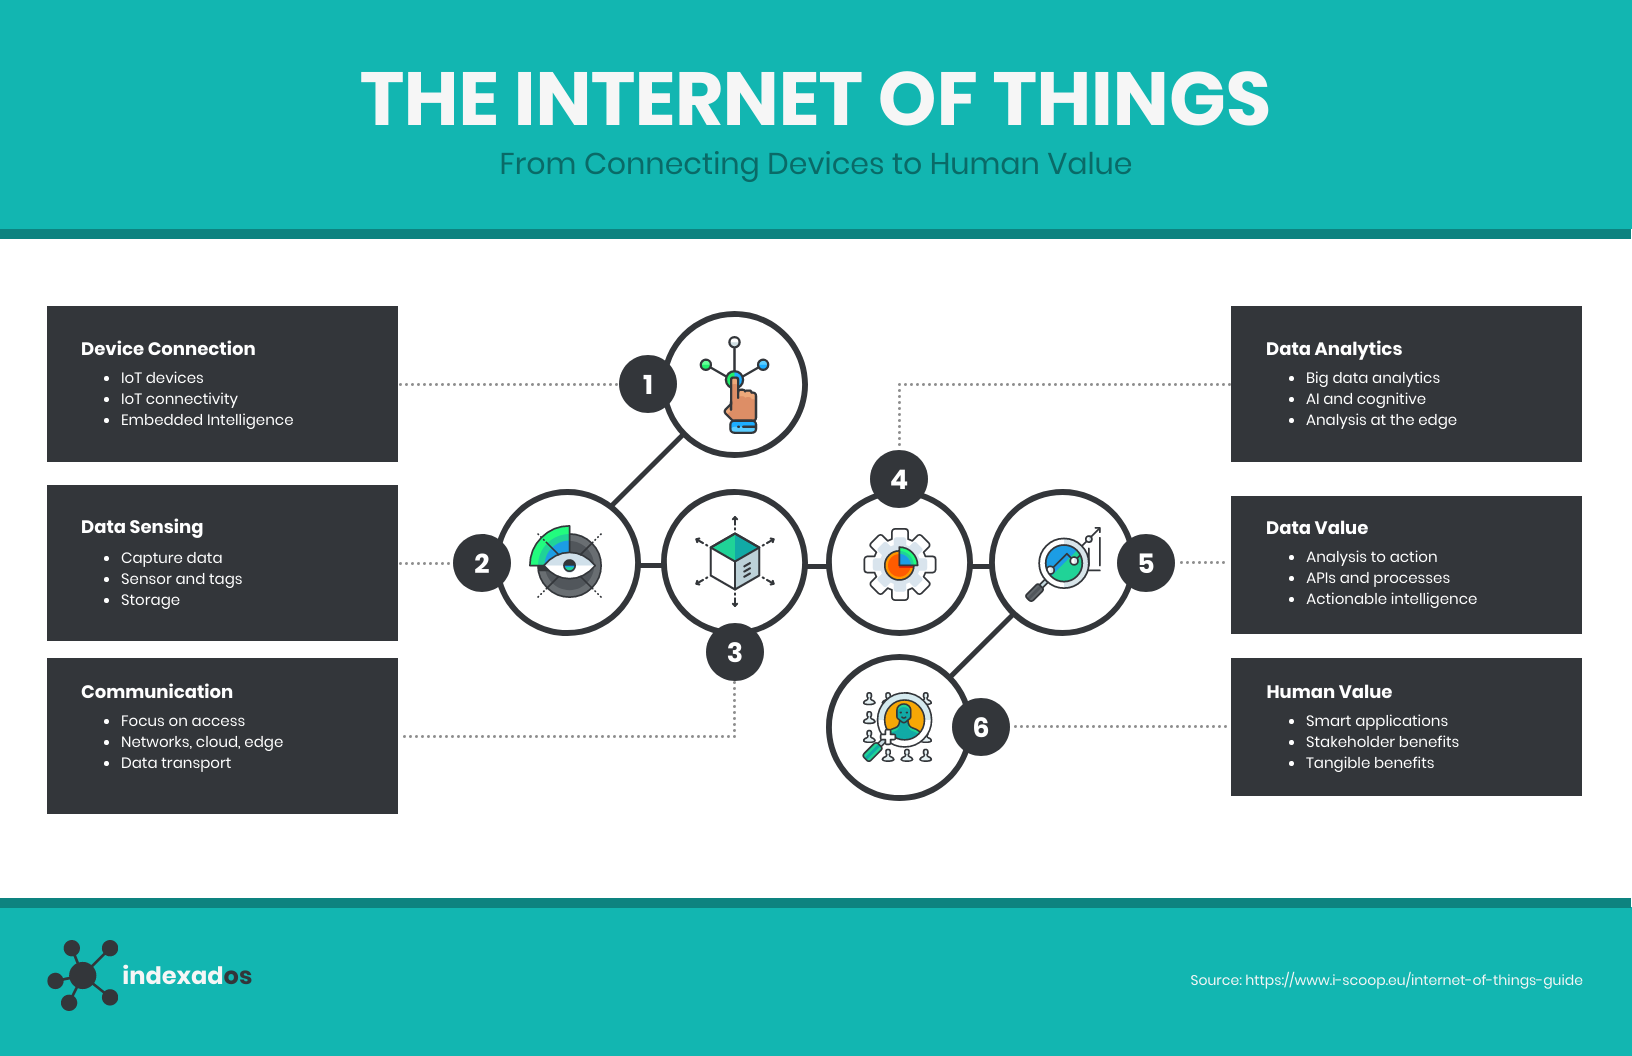 Technology Infographic Annotated List The Internet of Things